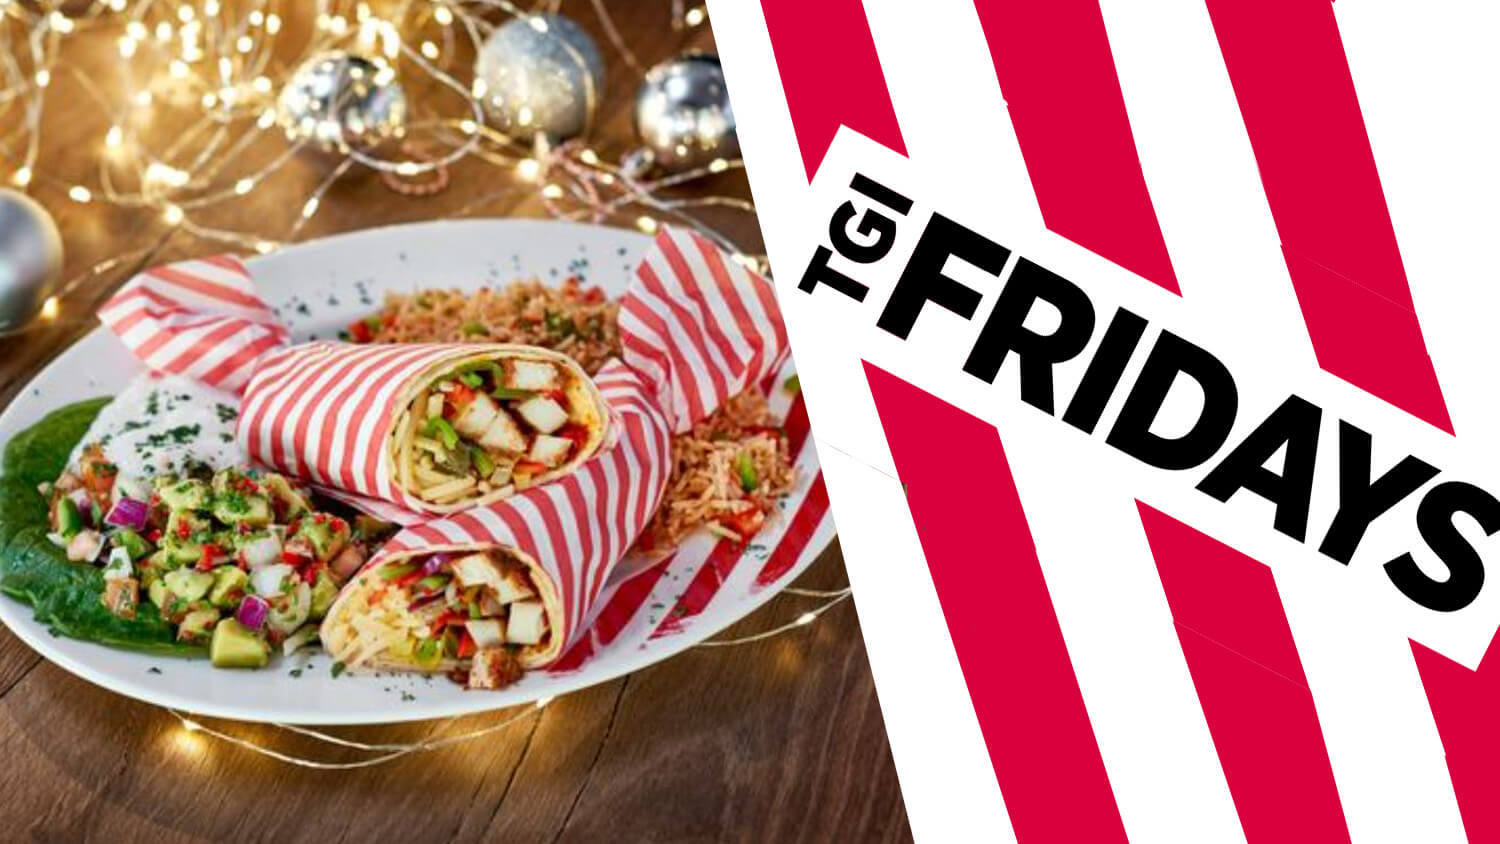 TGI Fridays UK Launches Vegan-Friendly Christmas Menu Featuring Pomegranate Hummus and Vegetable Fajitas